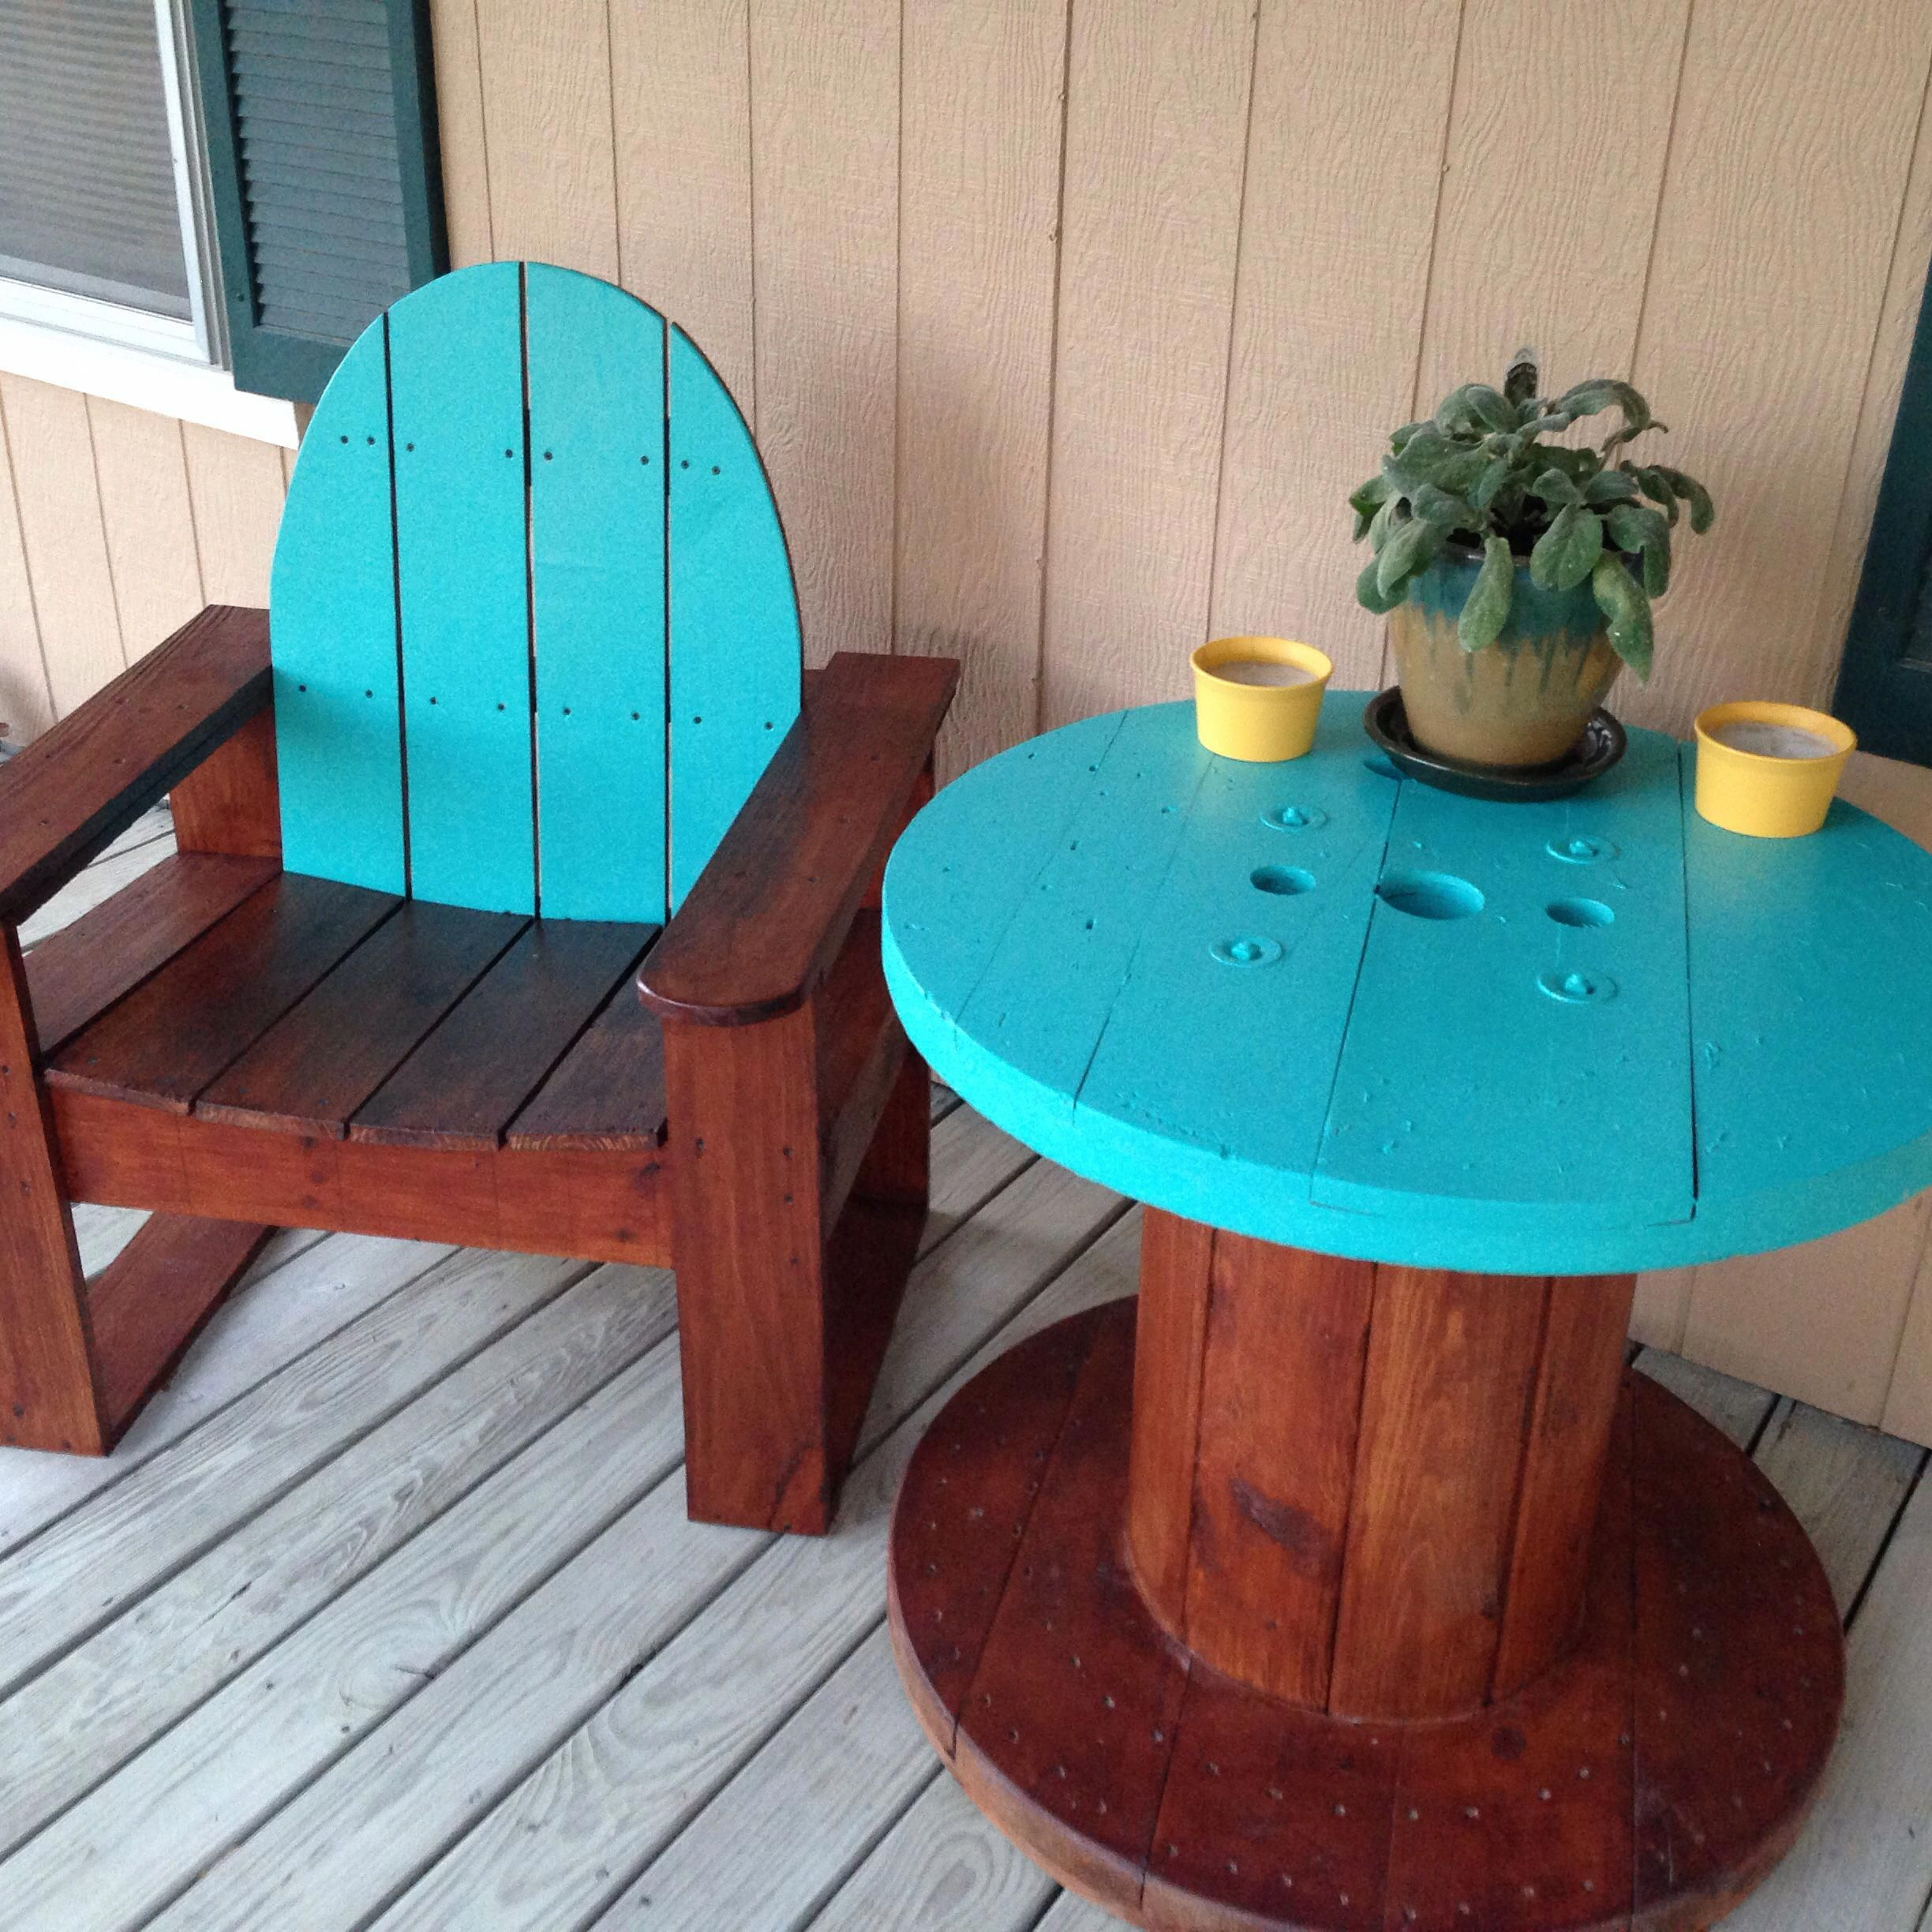 Front porch patio furniture. Electric wire spool table with matching chair! #NursingChairUk #cablespooltables